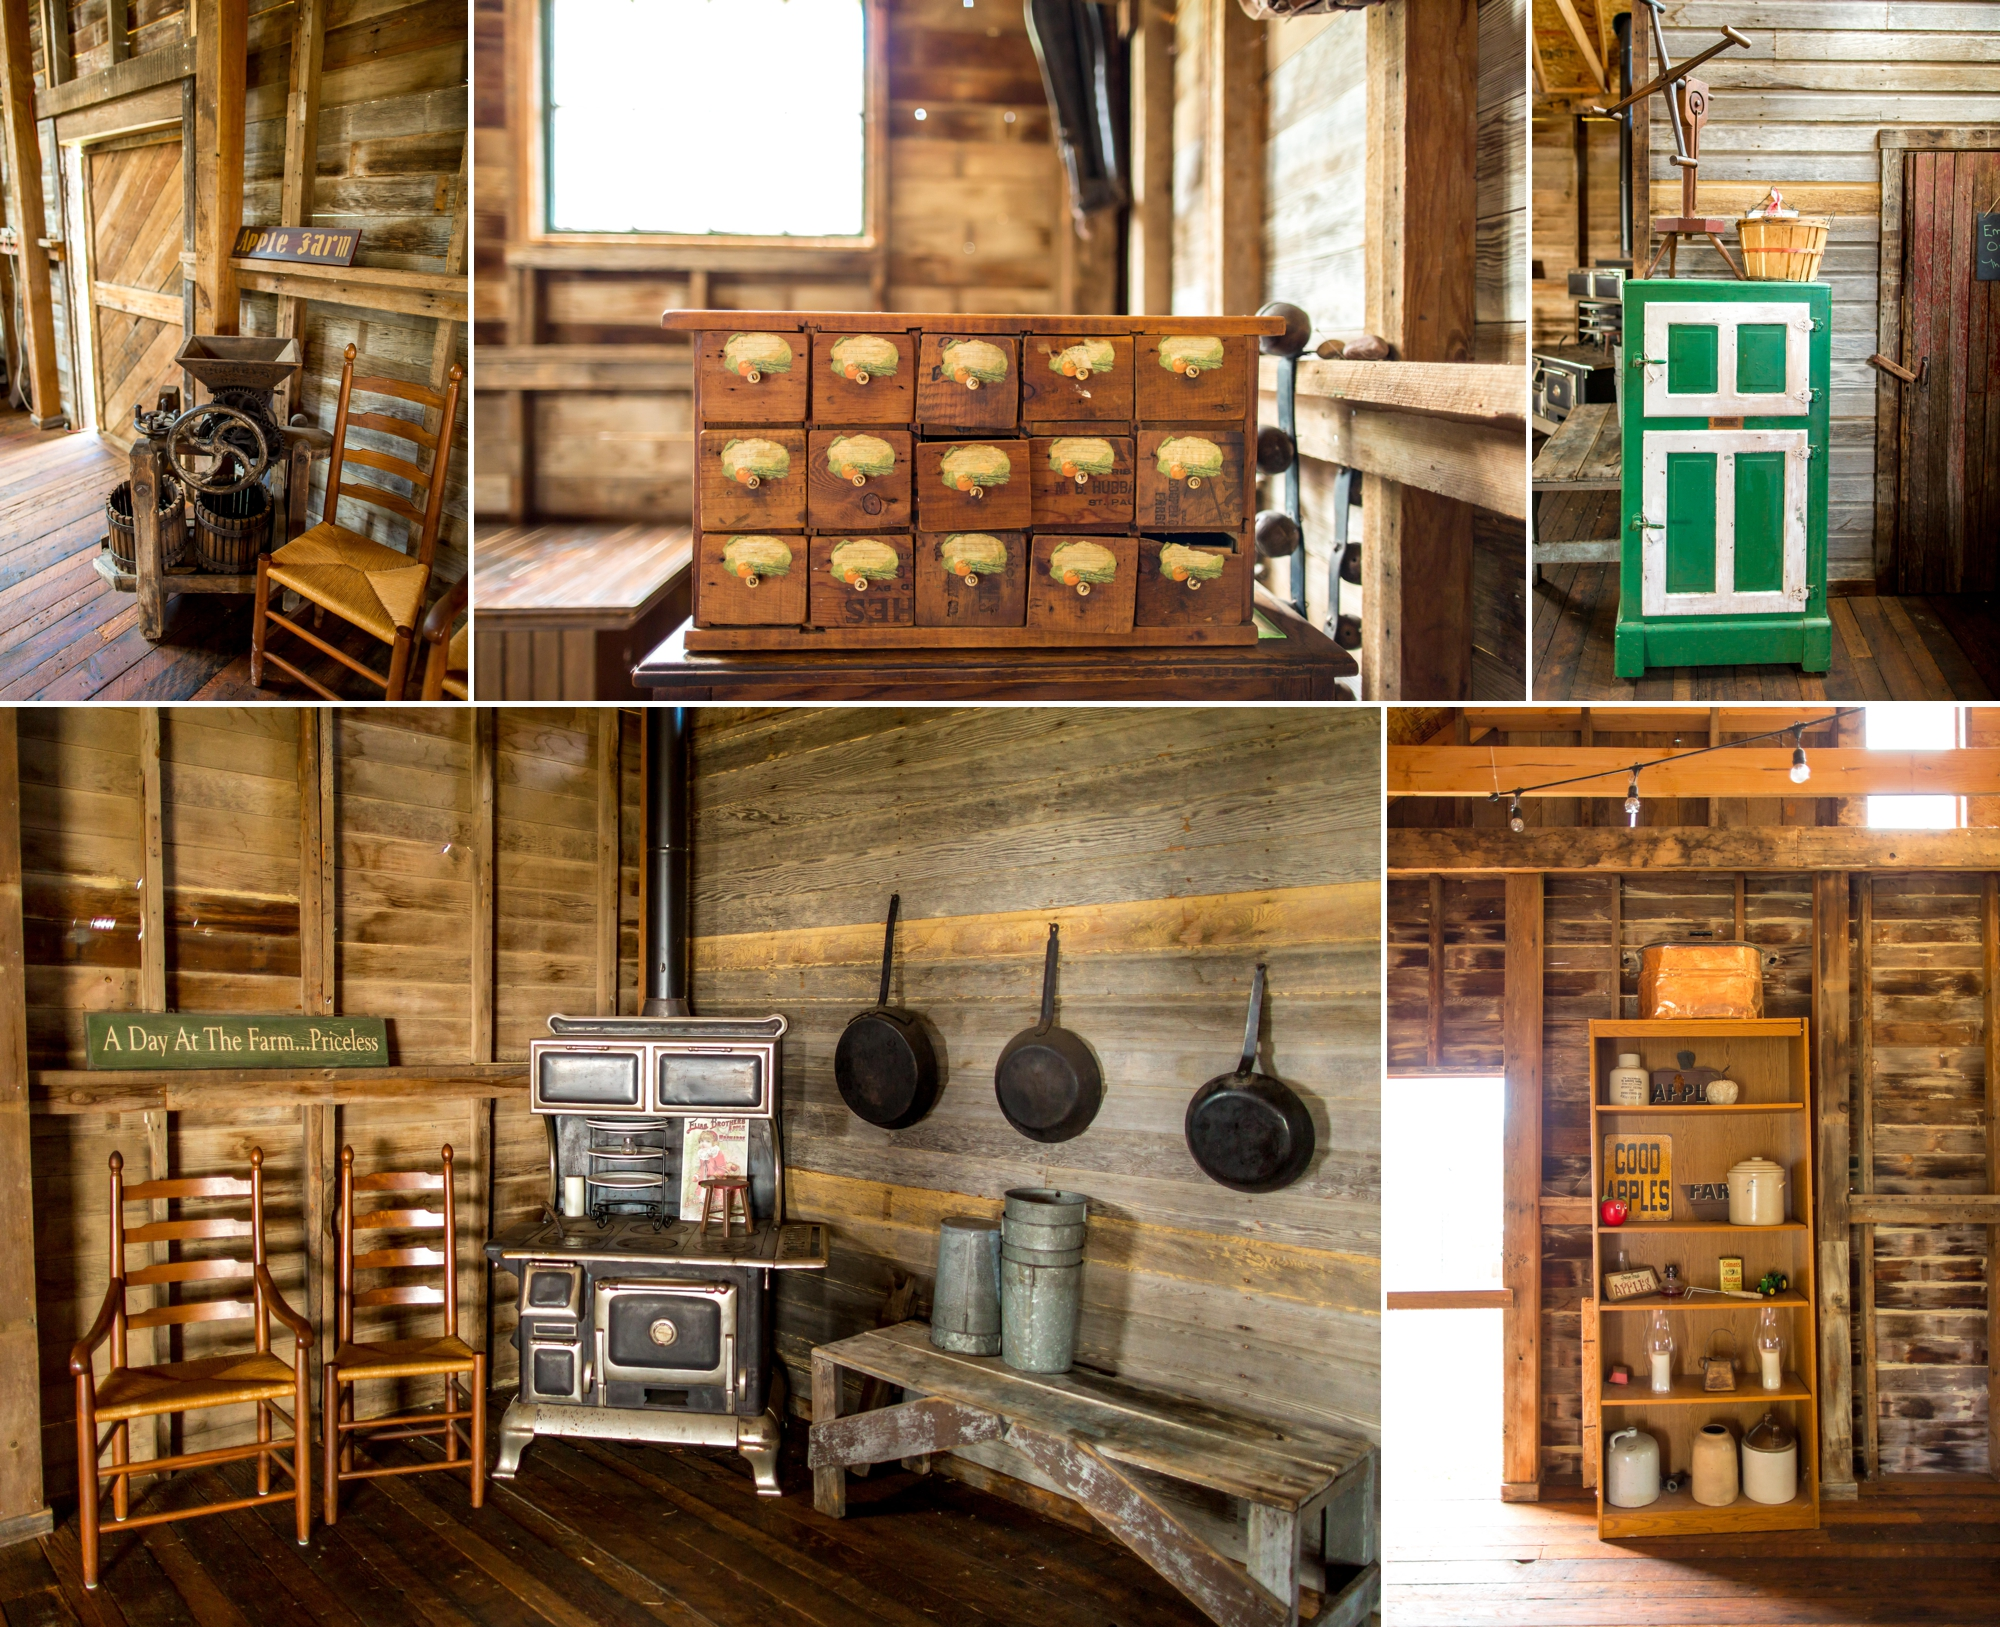 Ya Ya Farm & Orchard - Nothing like an apple orchard to haveamazing antiques!